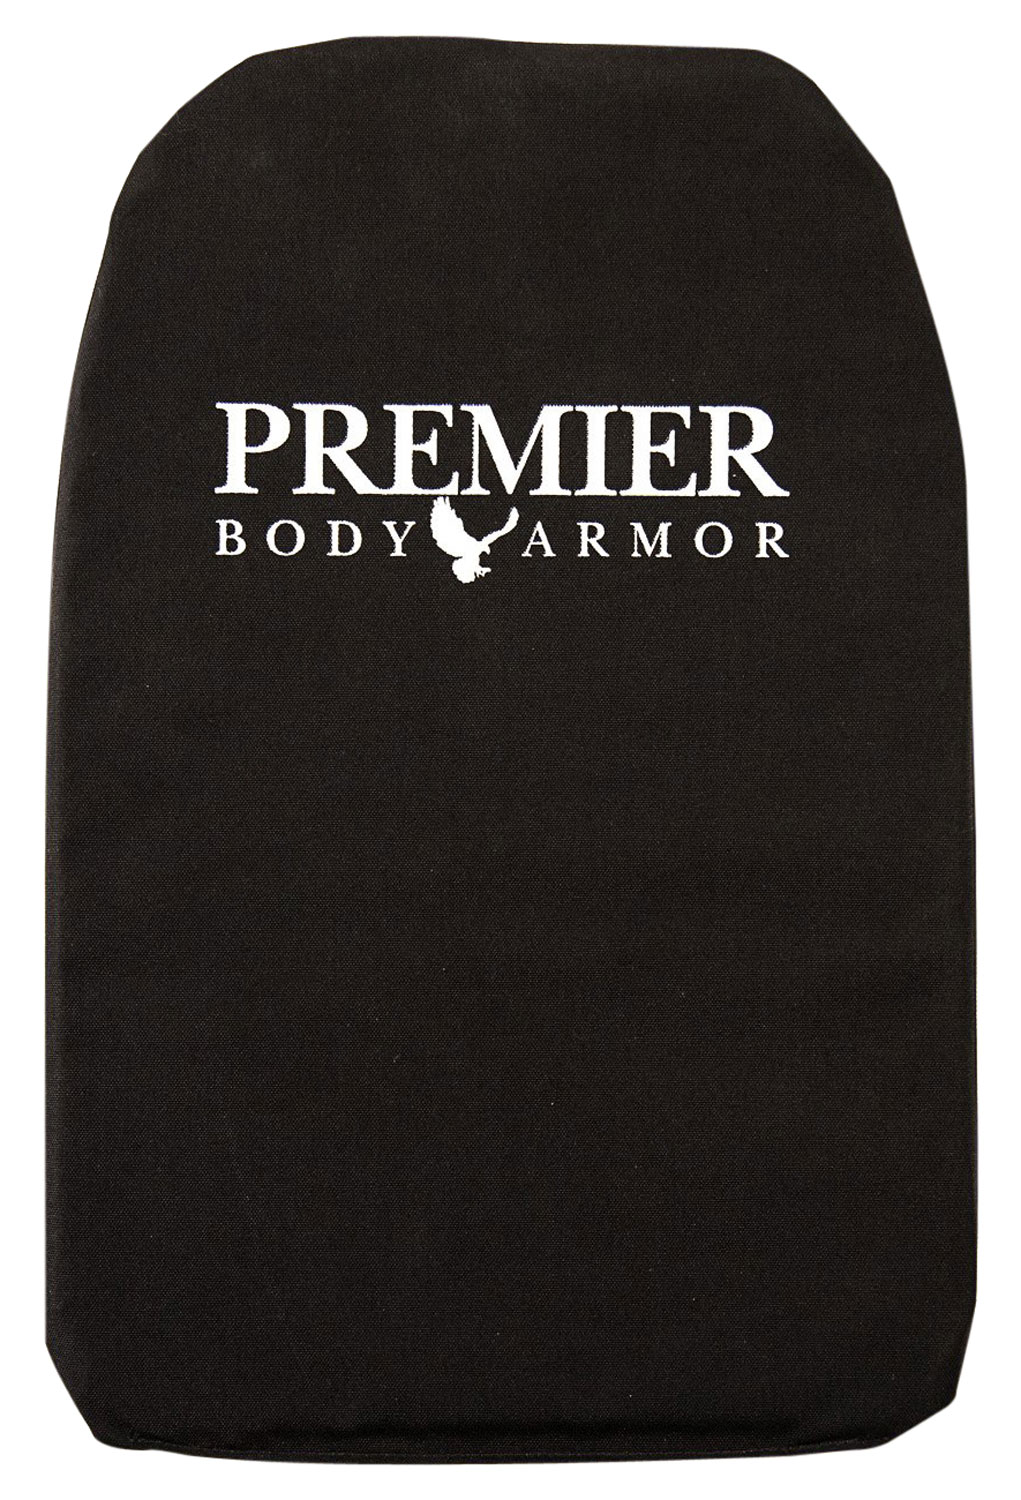 PREMIER BODY ARMOR LLC BPP9009 Backpack Panel Universal Body Armor Level IIIA 11x16.5 Kevlar/500D Cordura Black